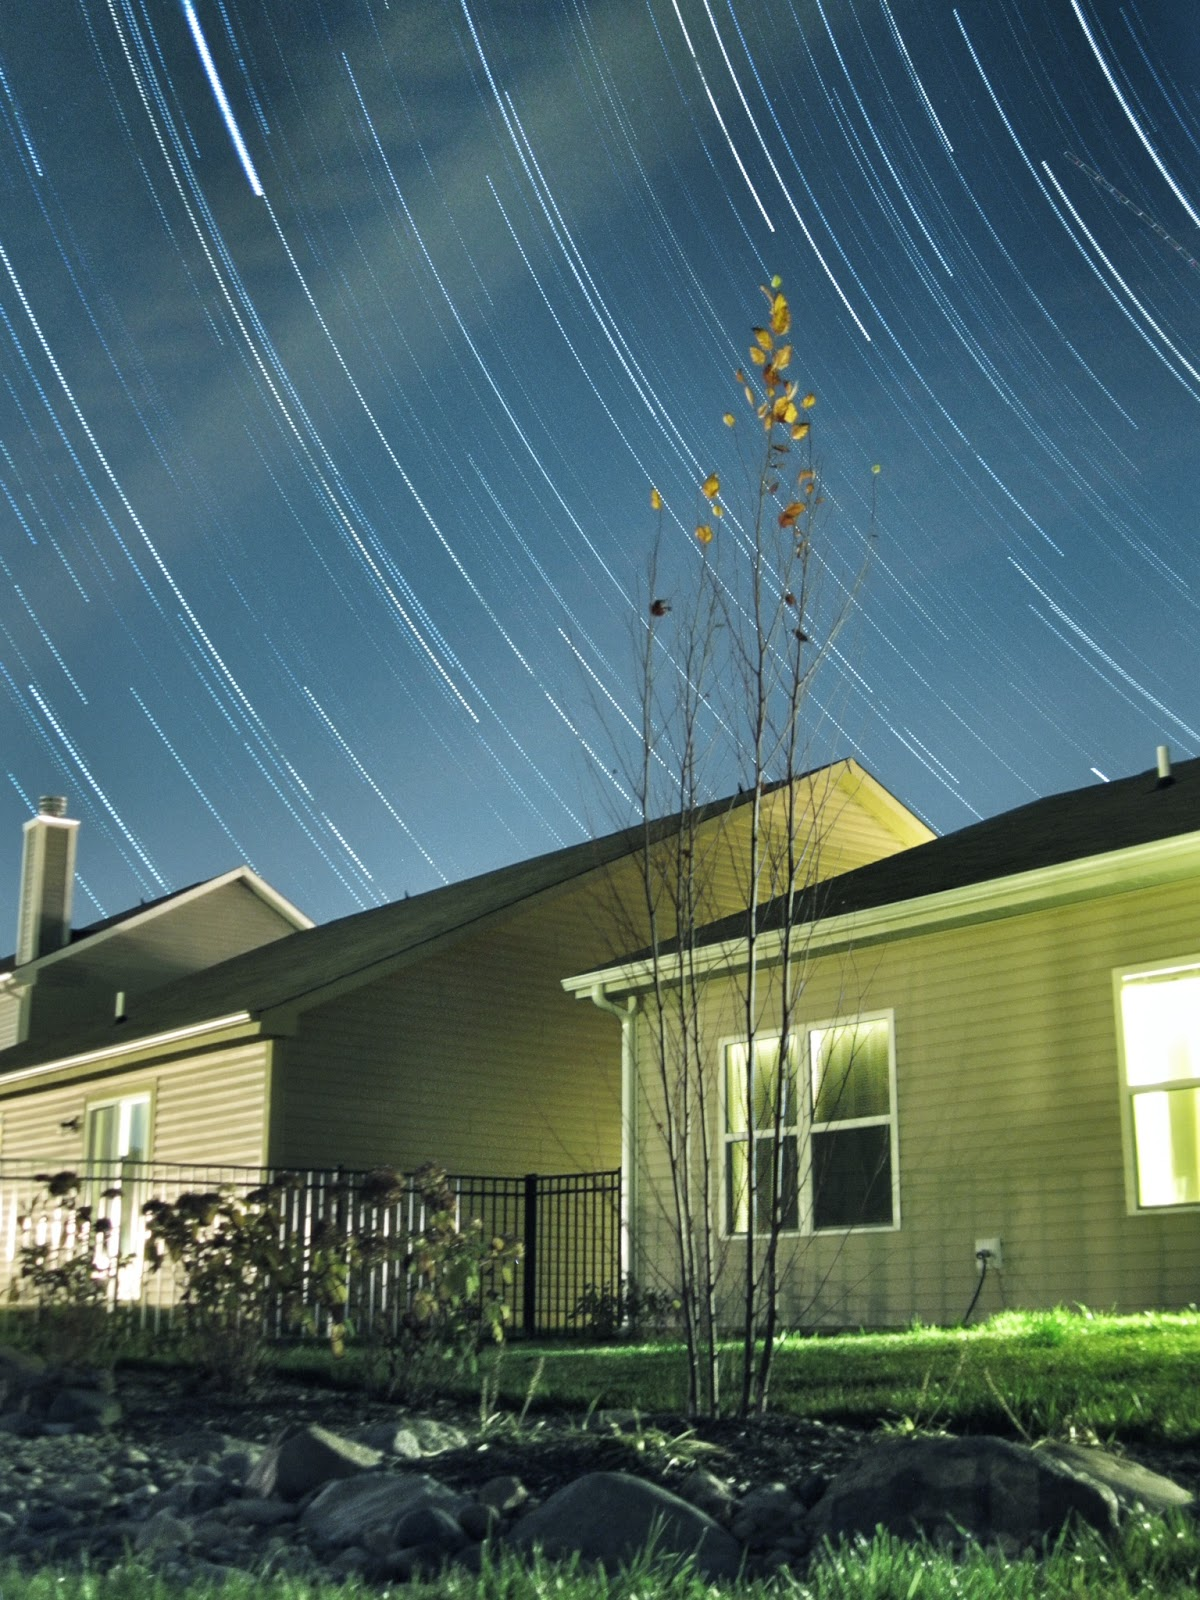 star trails with hdr effect